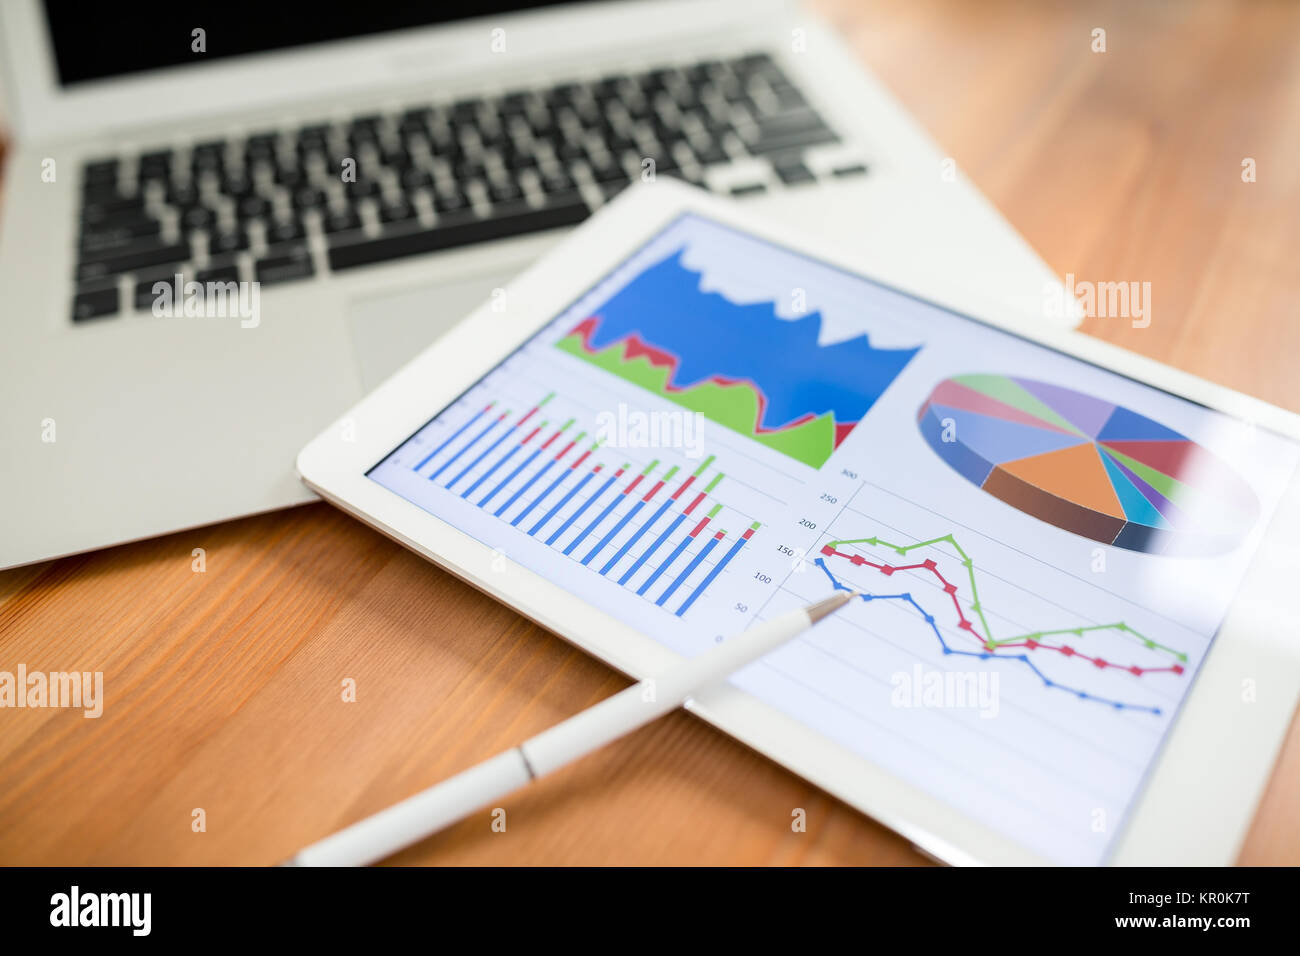 Software development diagram showing design stock photos software tablet showing charts and diagram on screen stock image ccuart Image collections